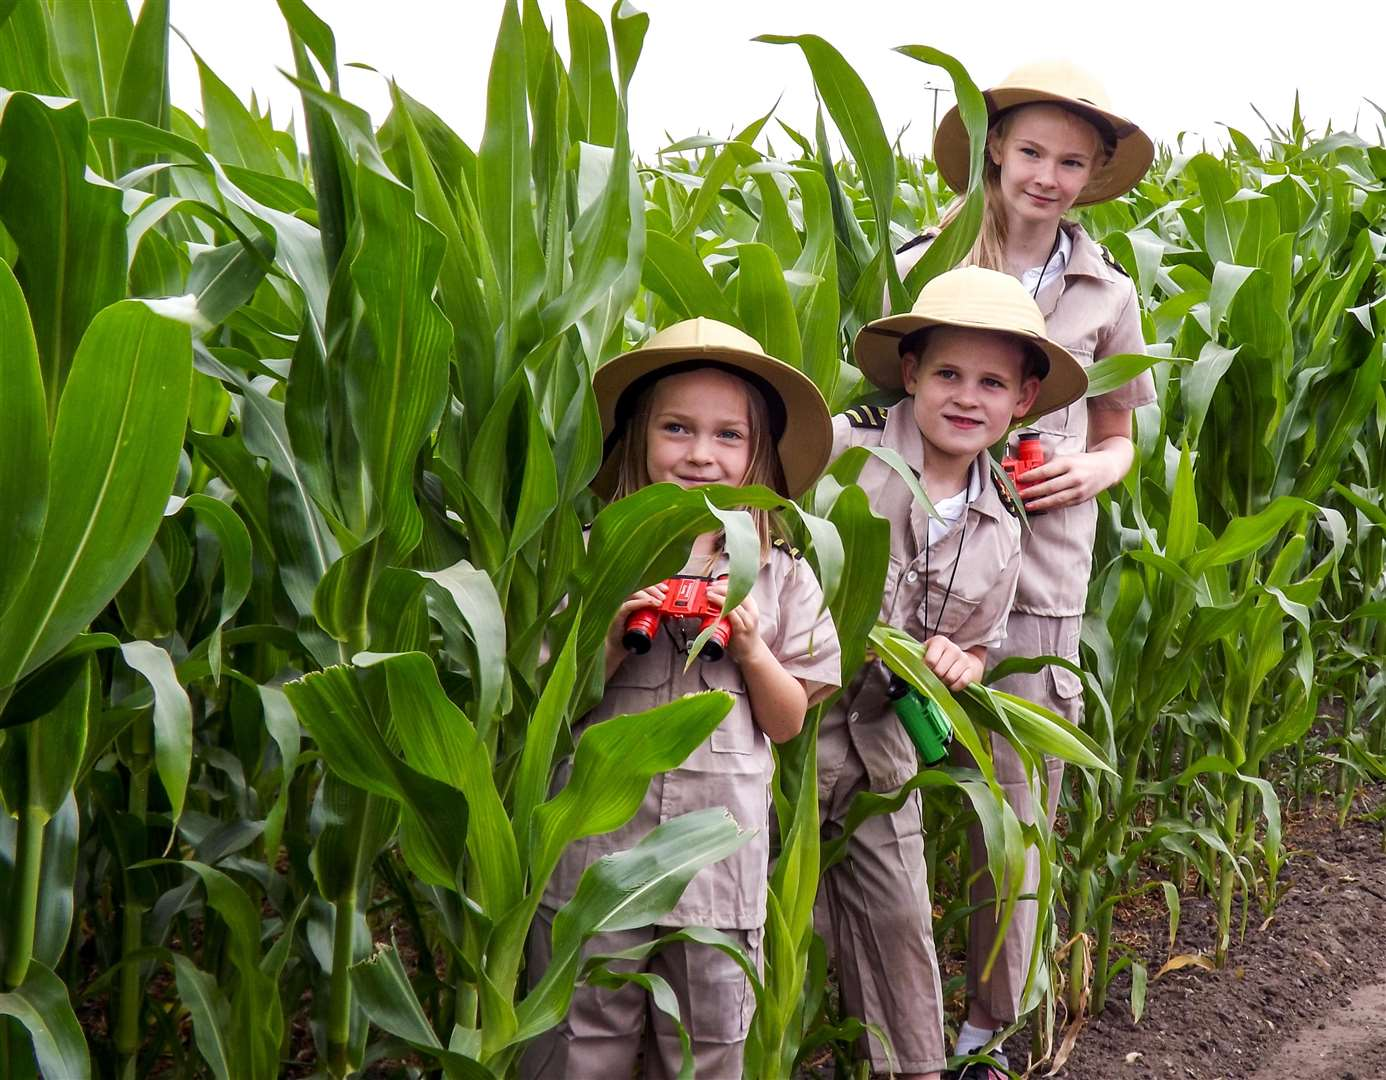 On the look out for dinosaurs in the Skylark maize maze: Annabell Wesley, 11, Owen Askew, 7 and Amelia Hathaway, 6. (3047063)